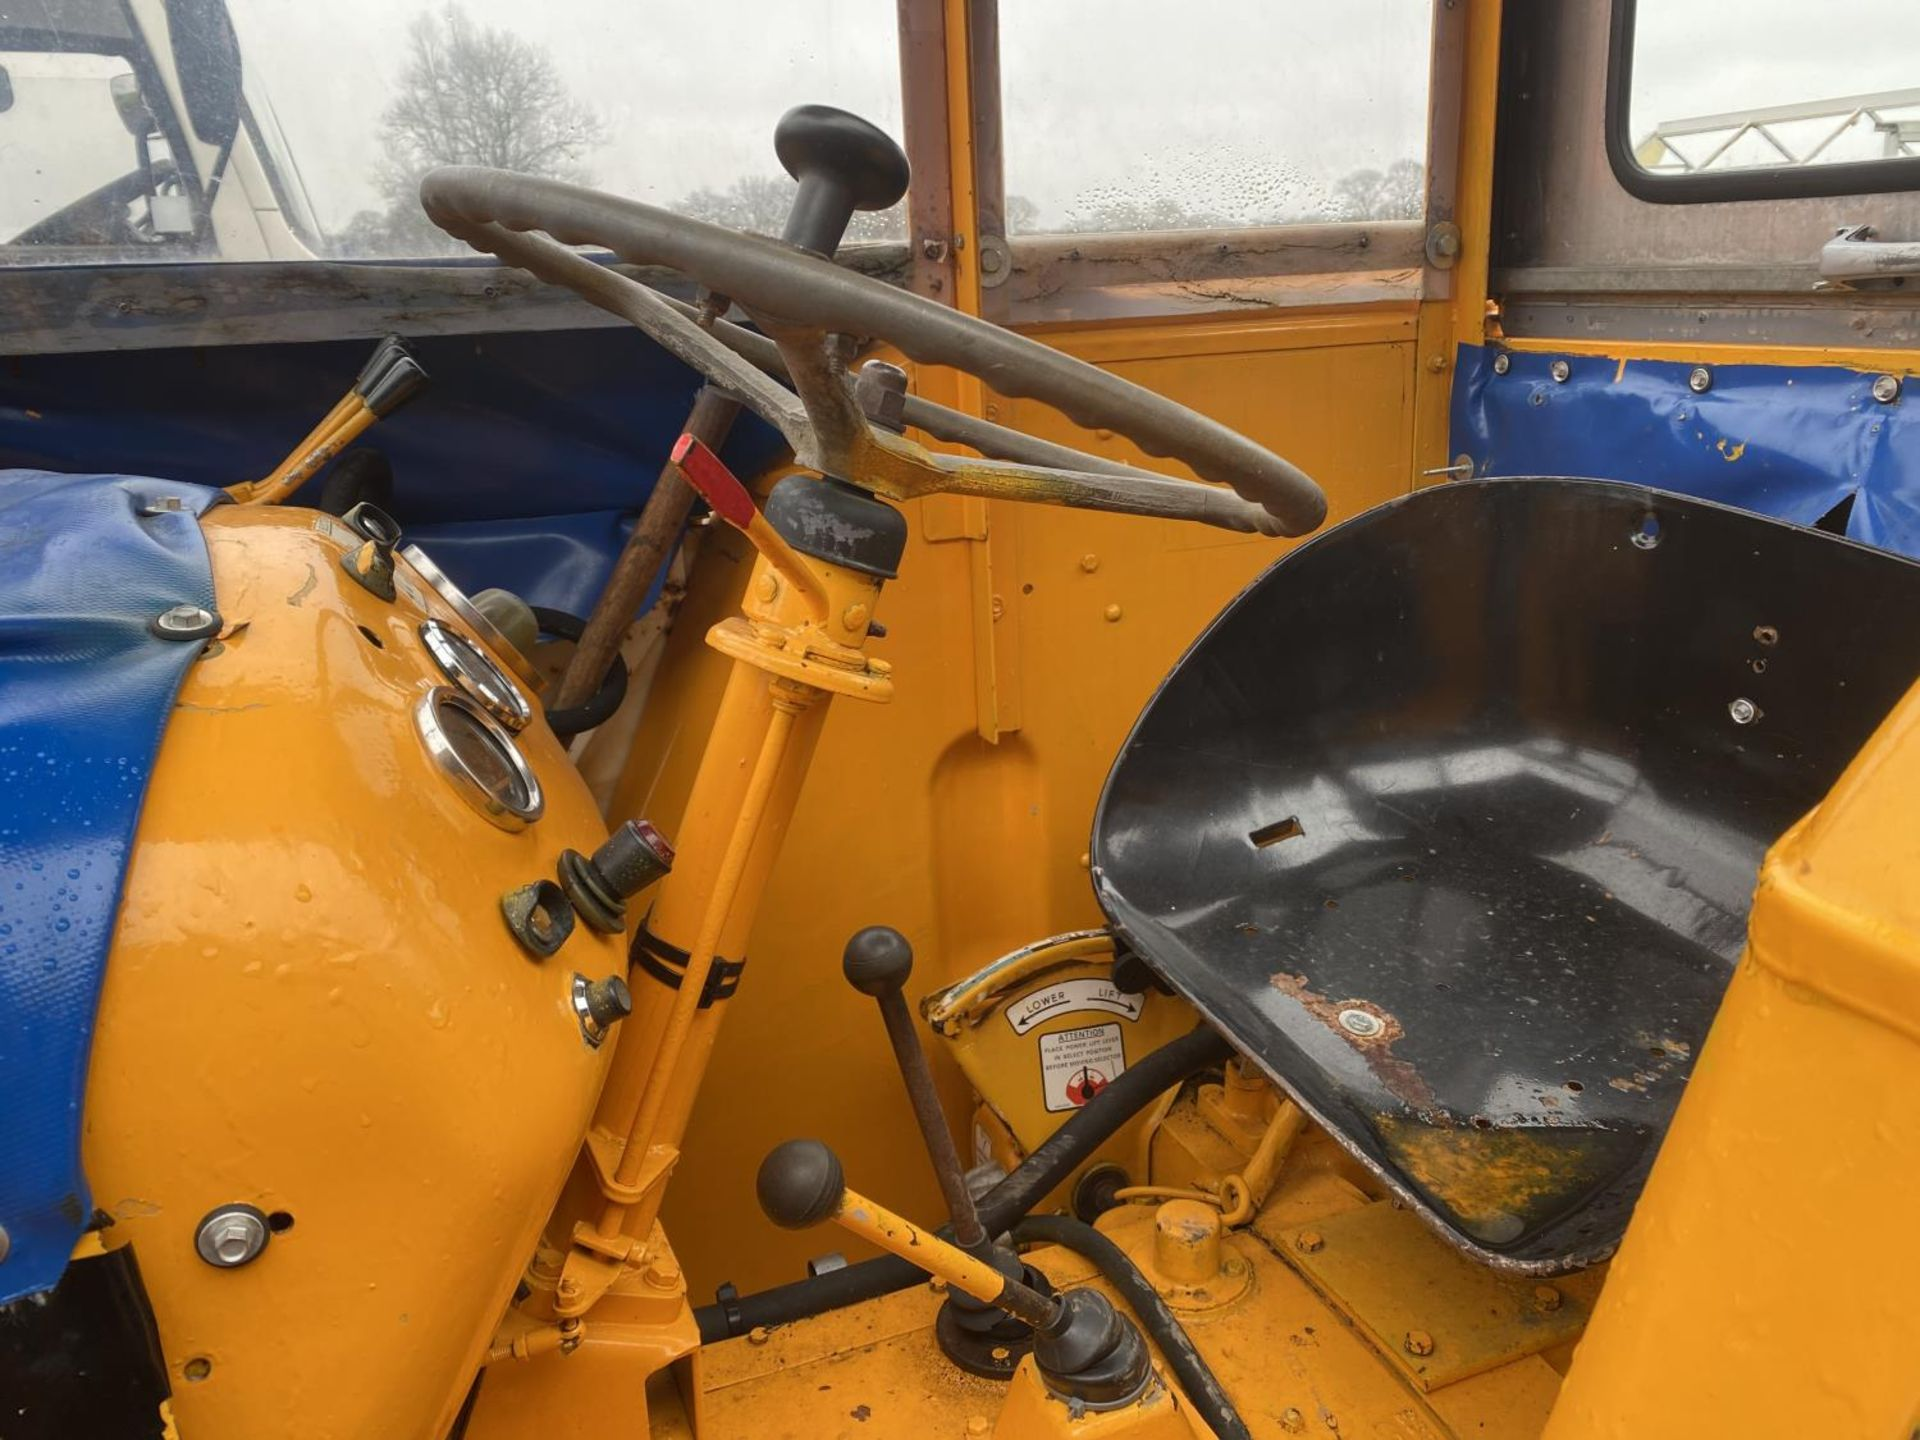 A DAVID BROWN 995 TRACTOR WITH FORE END LOADER AND MANURE FORK 3779 HOURS - Image 9 of 11